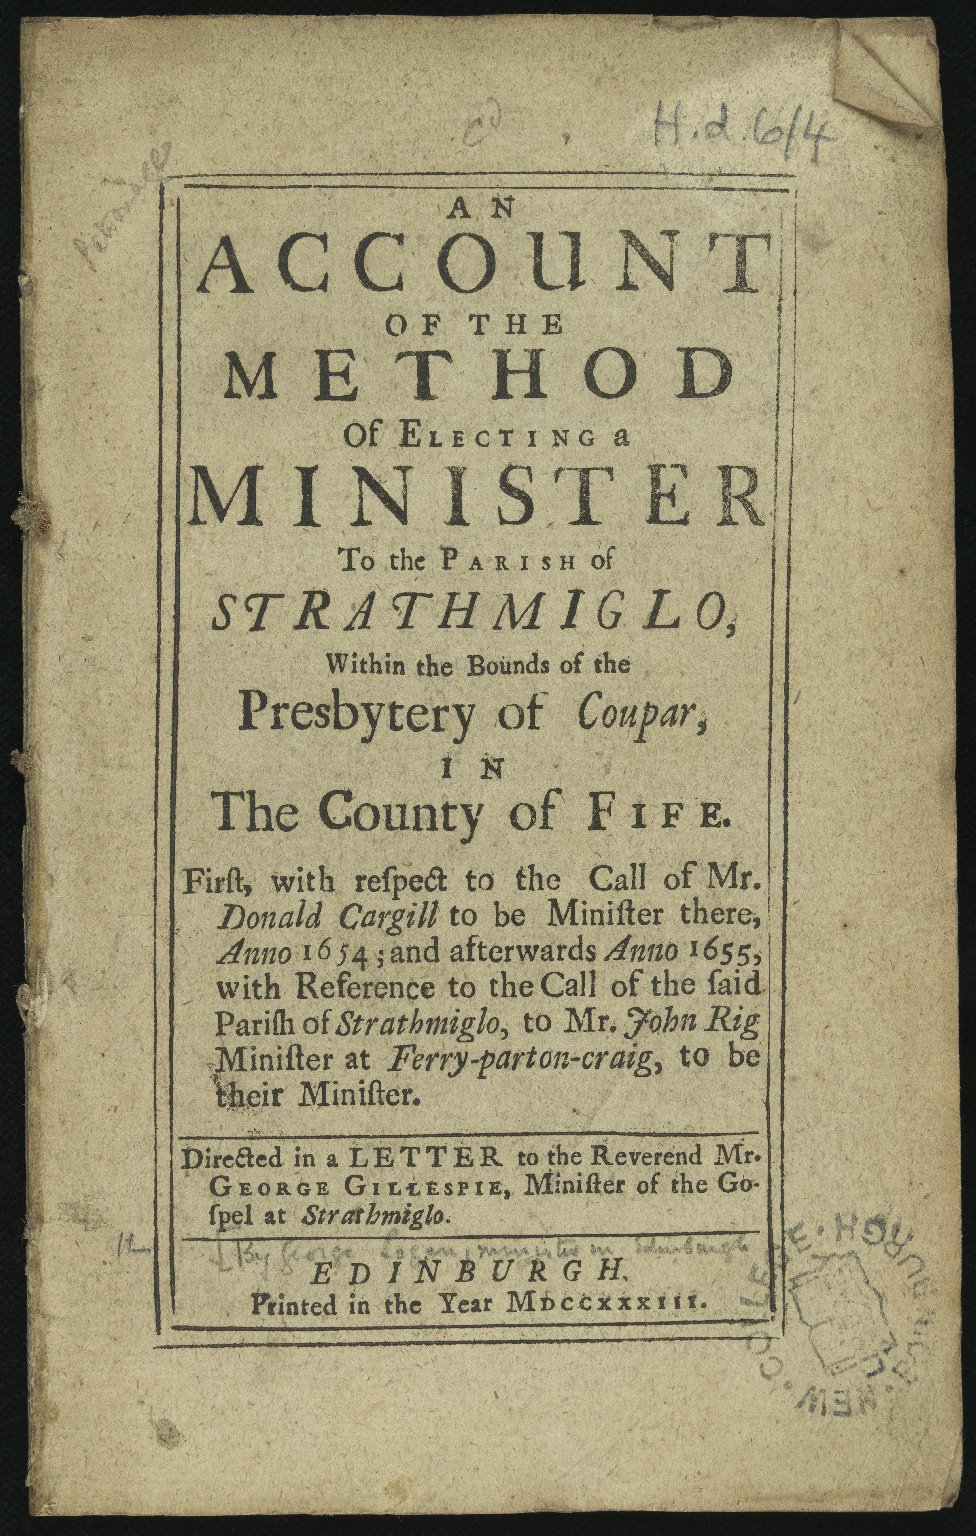 An Account of the Method of Electing a Minister to the Parish of Strathmiglo â?¦, Title page